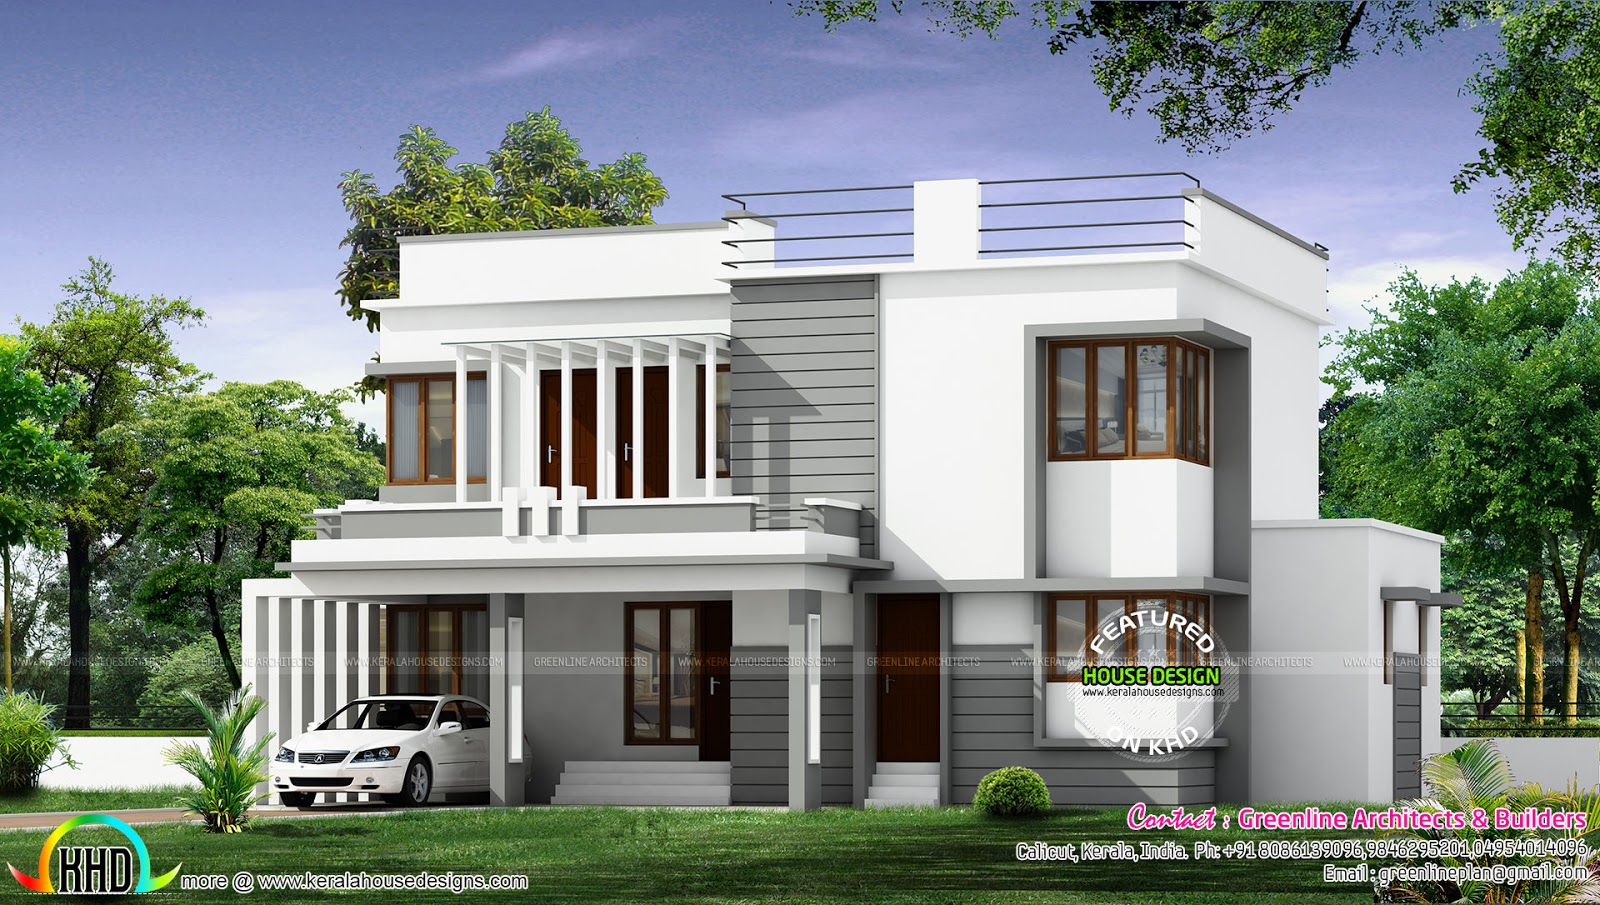 New Modern House Architecture Kerala Home Design And Floor Plans: new house design